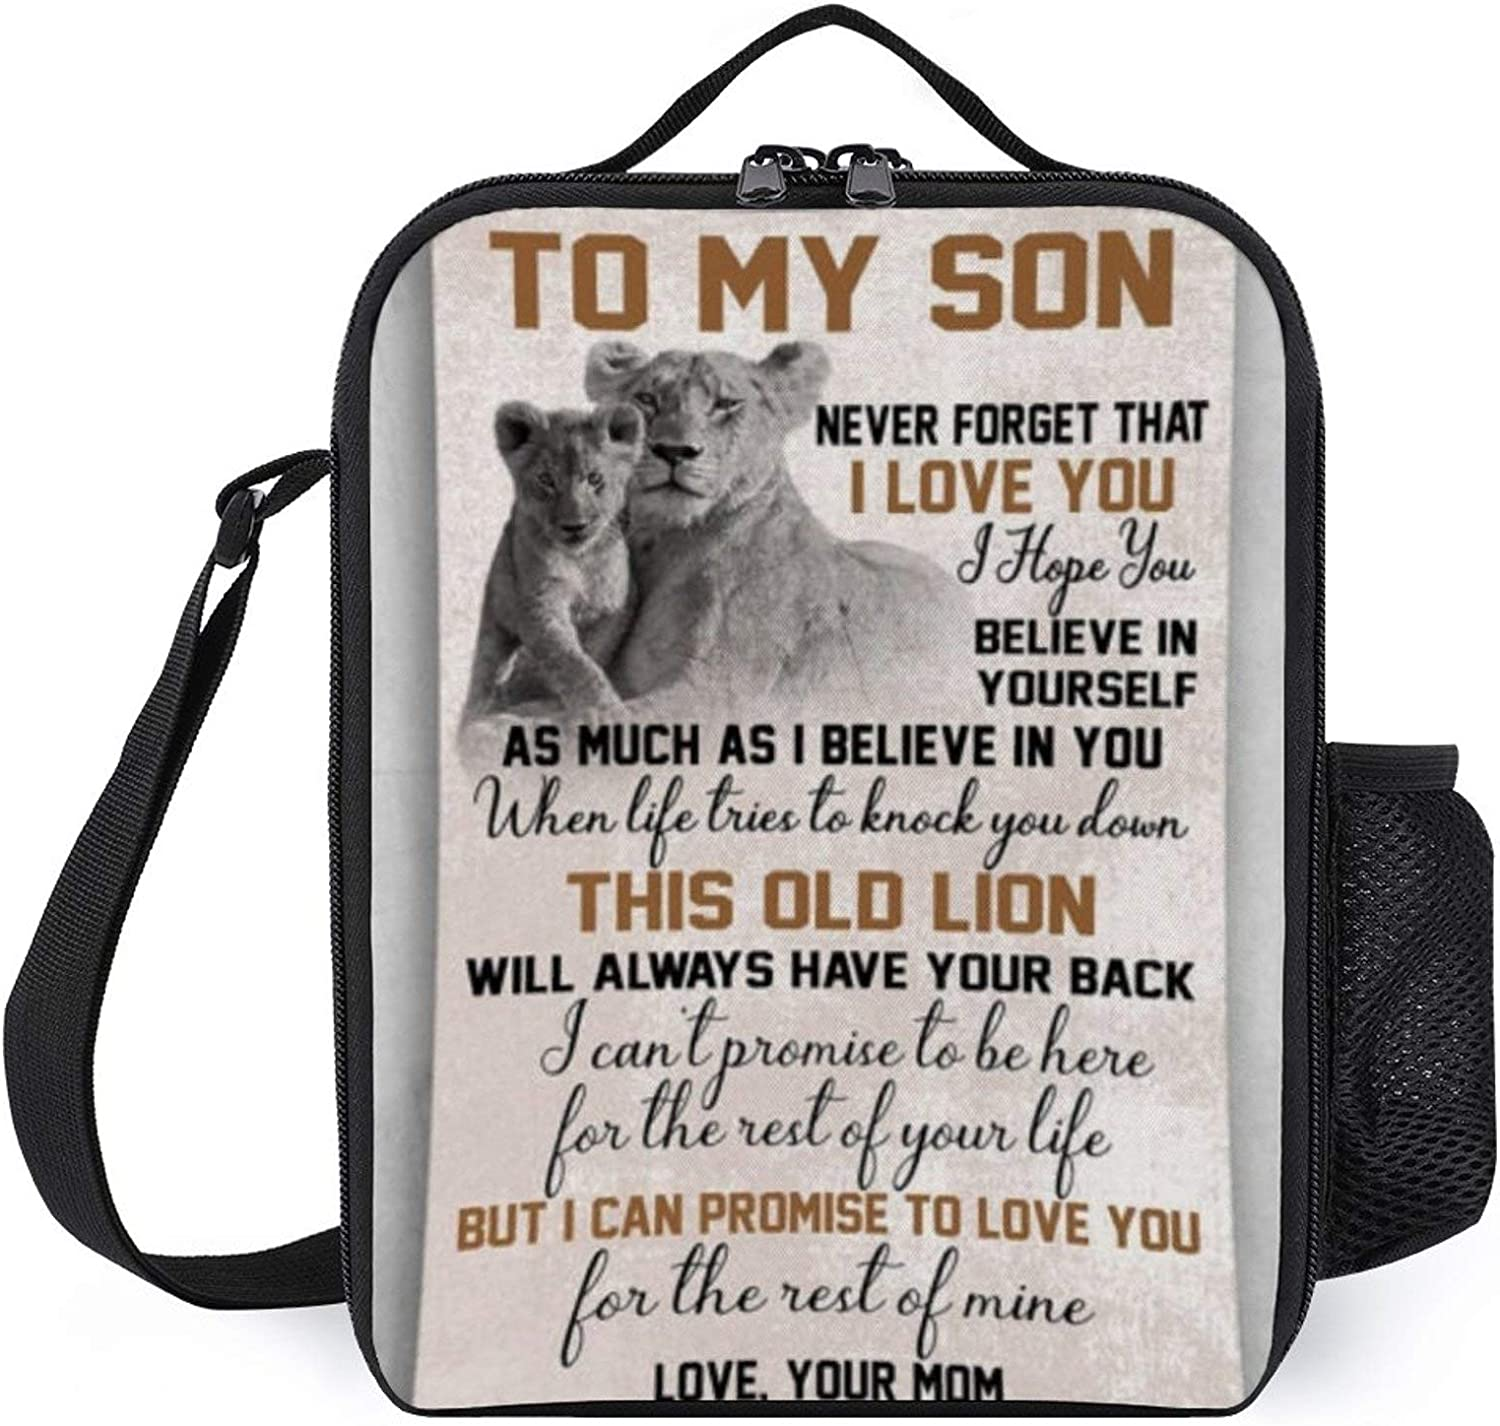 Portable Thermal Insulated Picnic Lunch Bag,Mama Lion And Her Beautiful Baby Never Forget That I Love You Love Your Mom Food Handbag Lunch Box With Shoulder Strap For Hot Or Cold Groceries